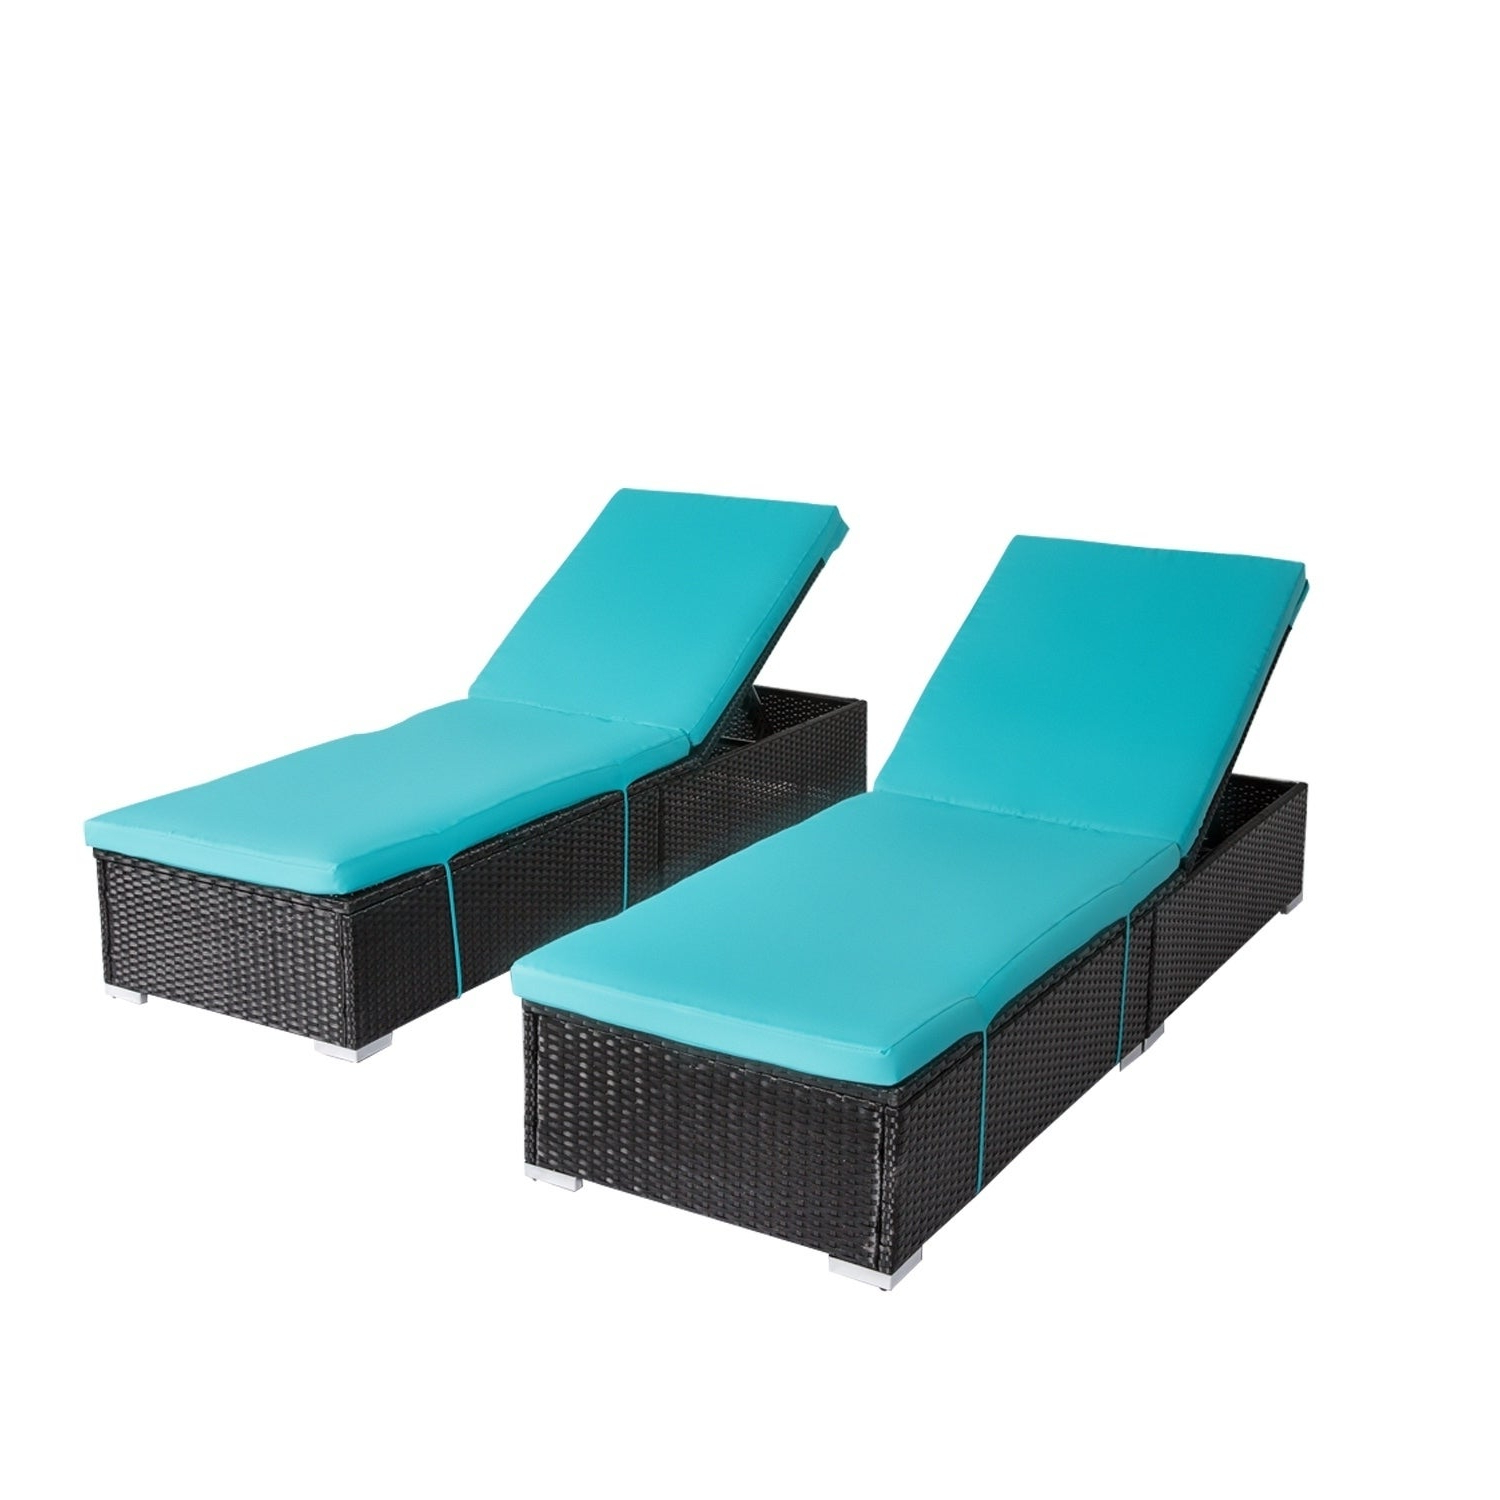 Adjustable Outdoor Wicker Chaise Lounge Chairs With Cushion Intended For Widely Used Kinbor Outdoor Adjustable Chaise Lounge Chair Pe Rattan Wicker Chaise Pool Chairs W/cushions (View 2 of 25)